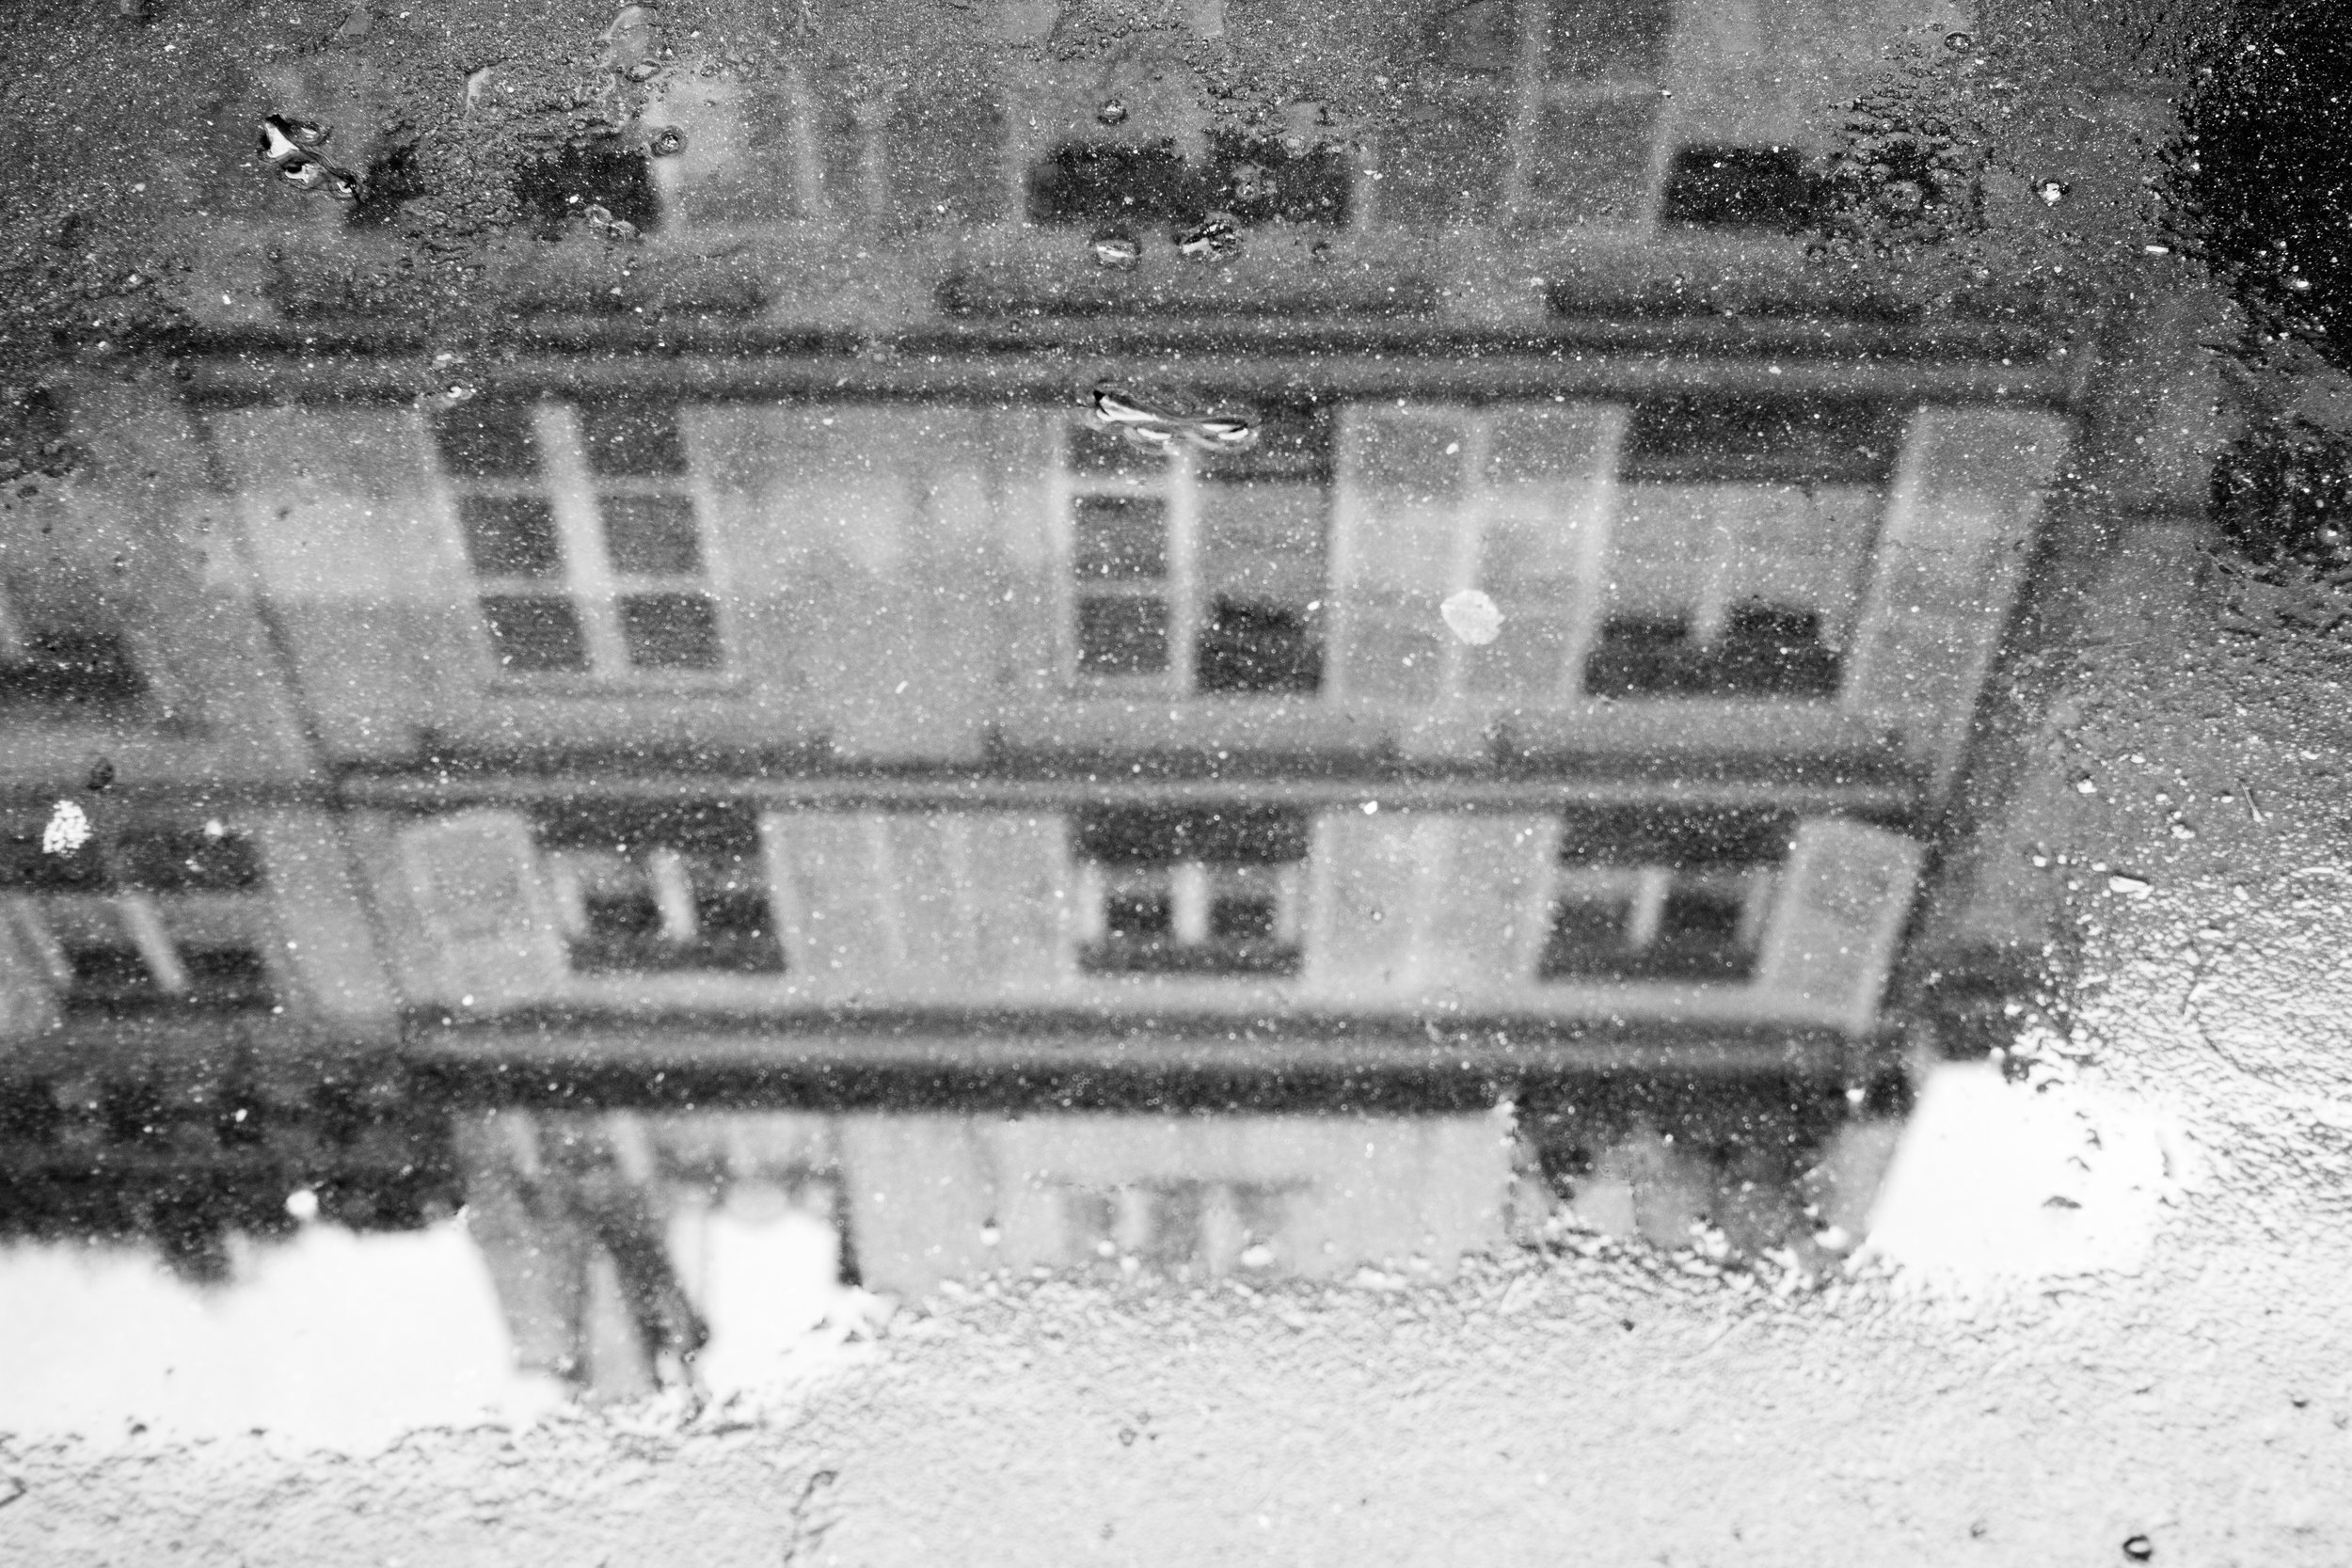 paris rain reflection in puddle